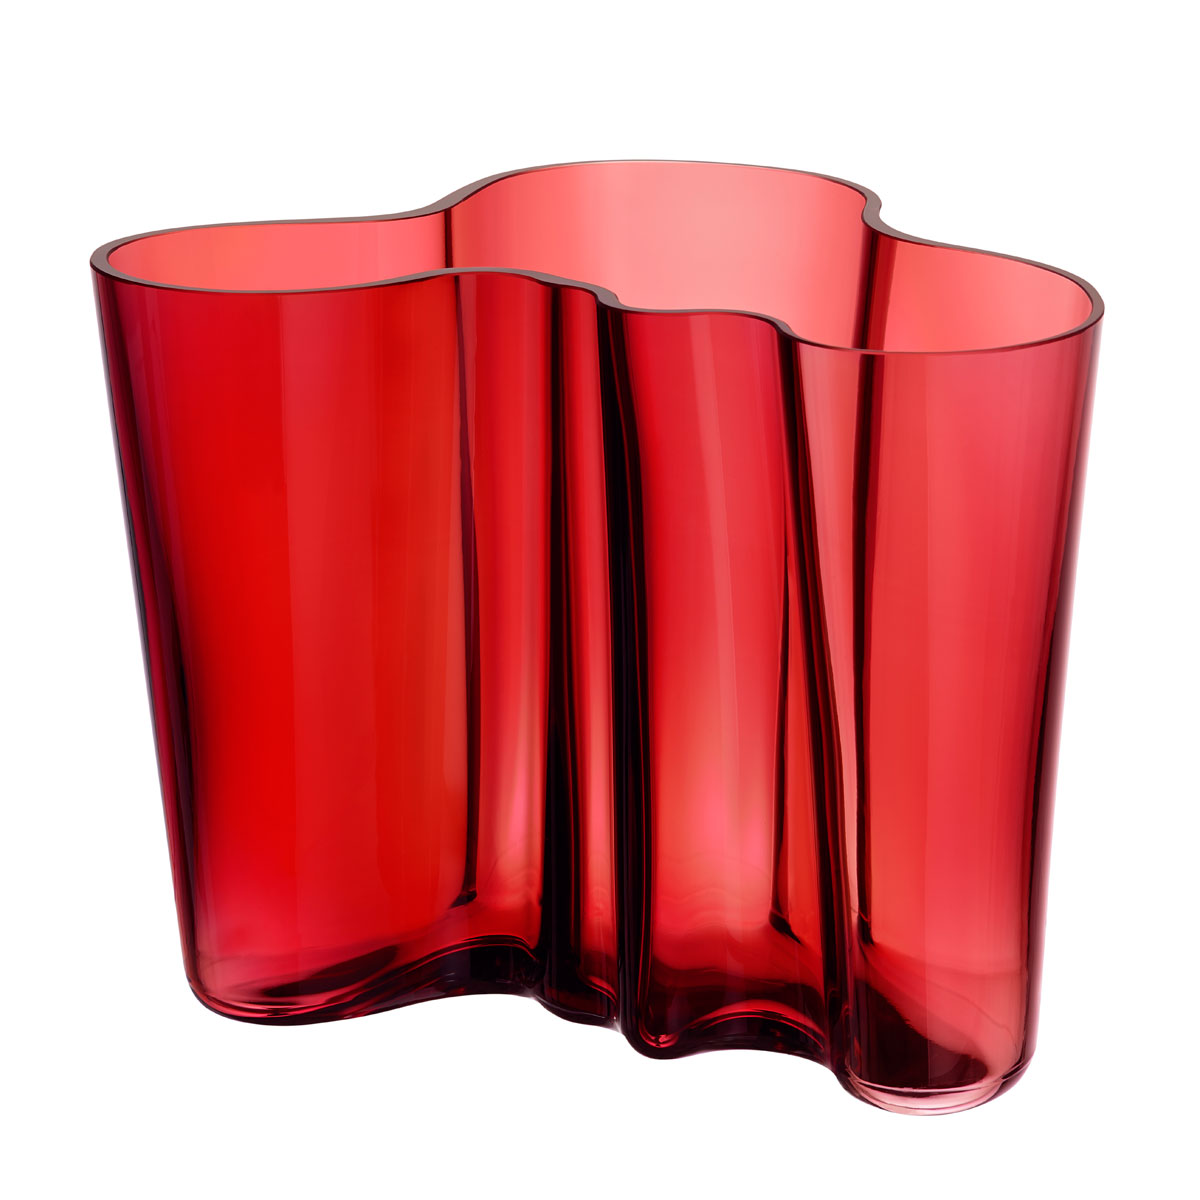 iittala aalto cranberry vase 6 1 4 ready for red. Black Bedroom Furniture Sets. Home Design Ideas